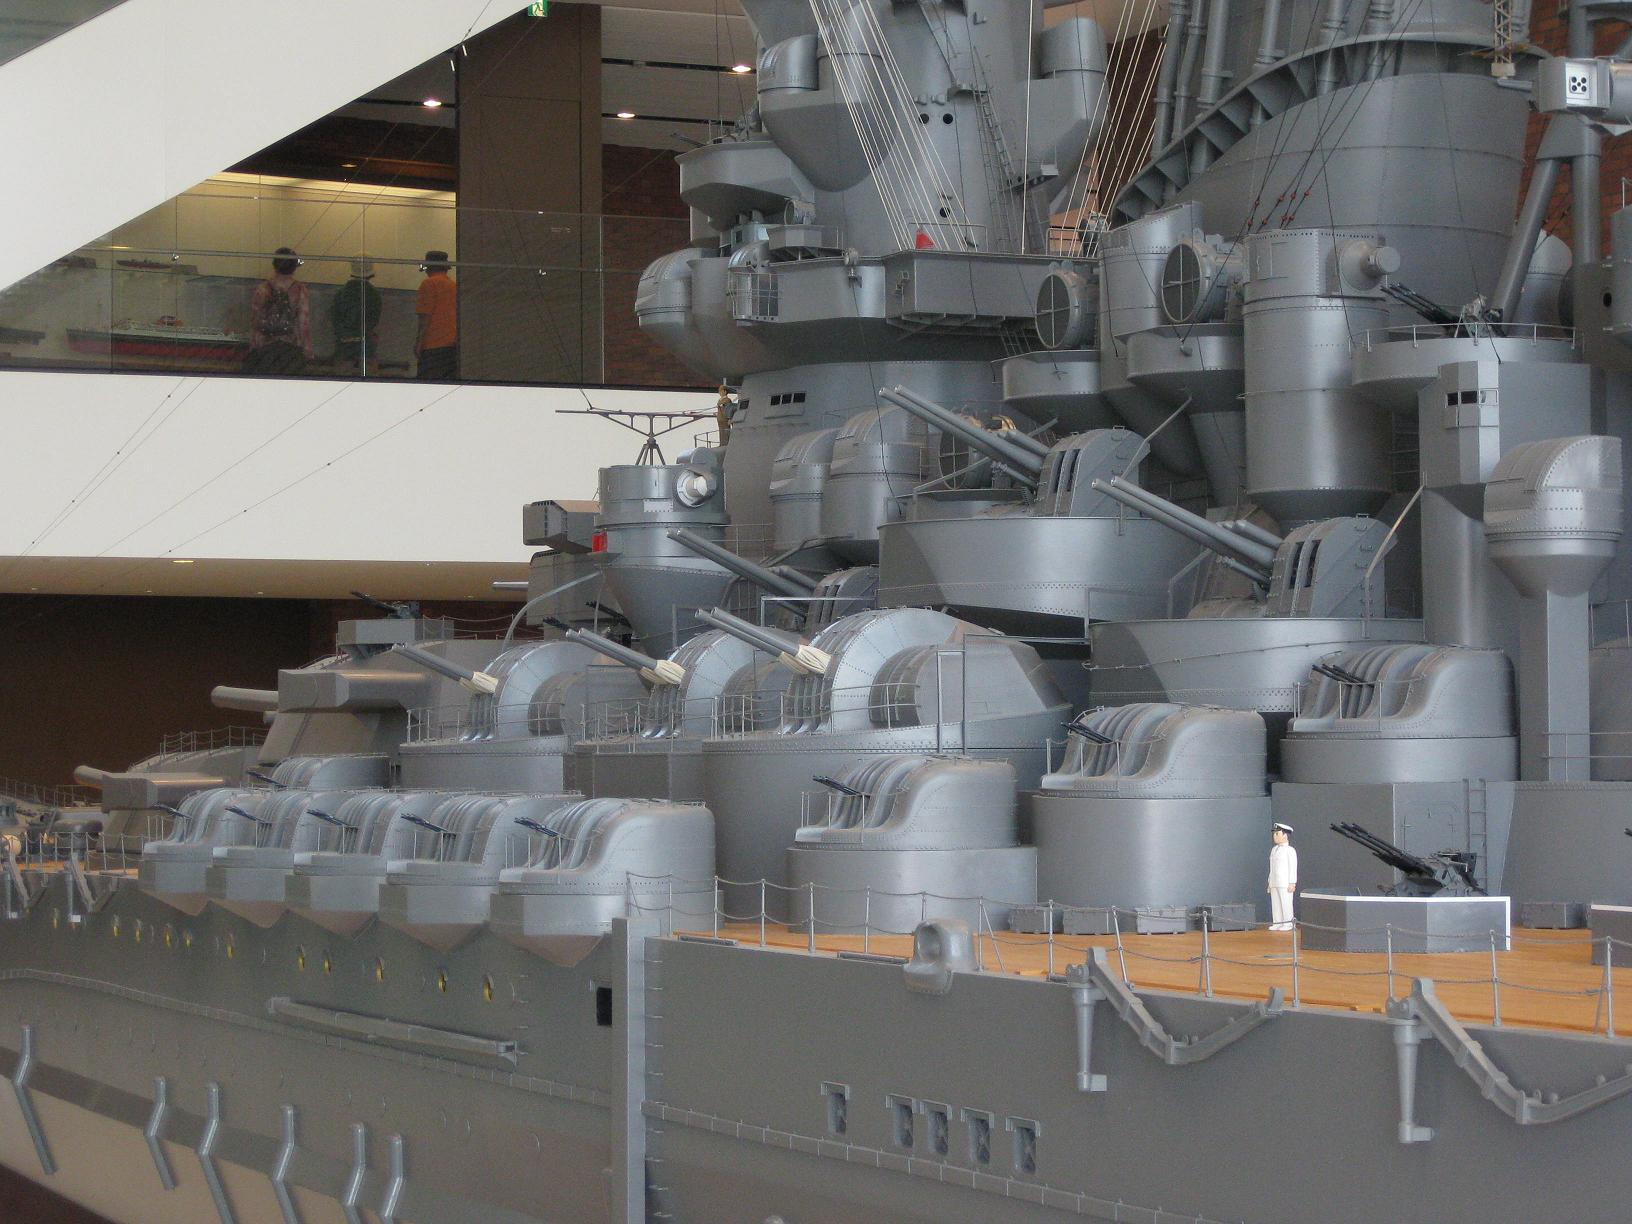 File:Yamato model AA guns.jpg - Wikimedia Commons